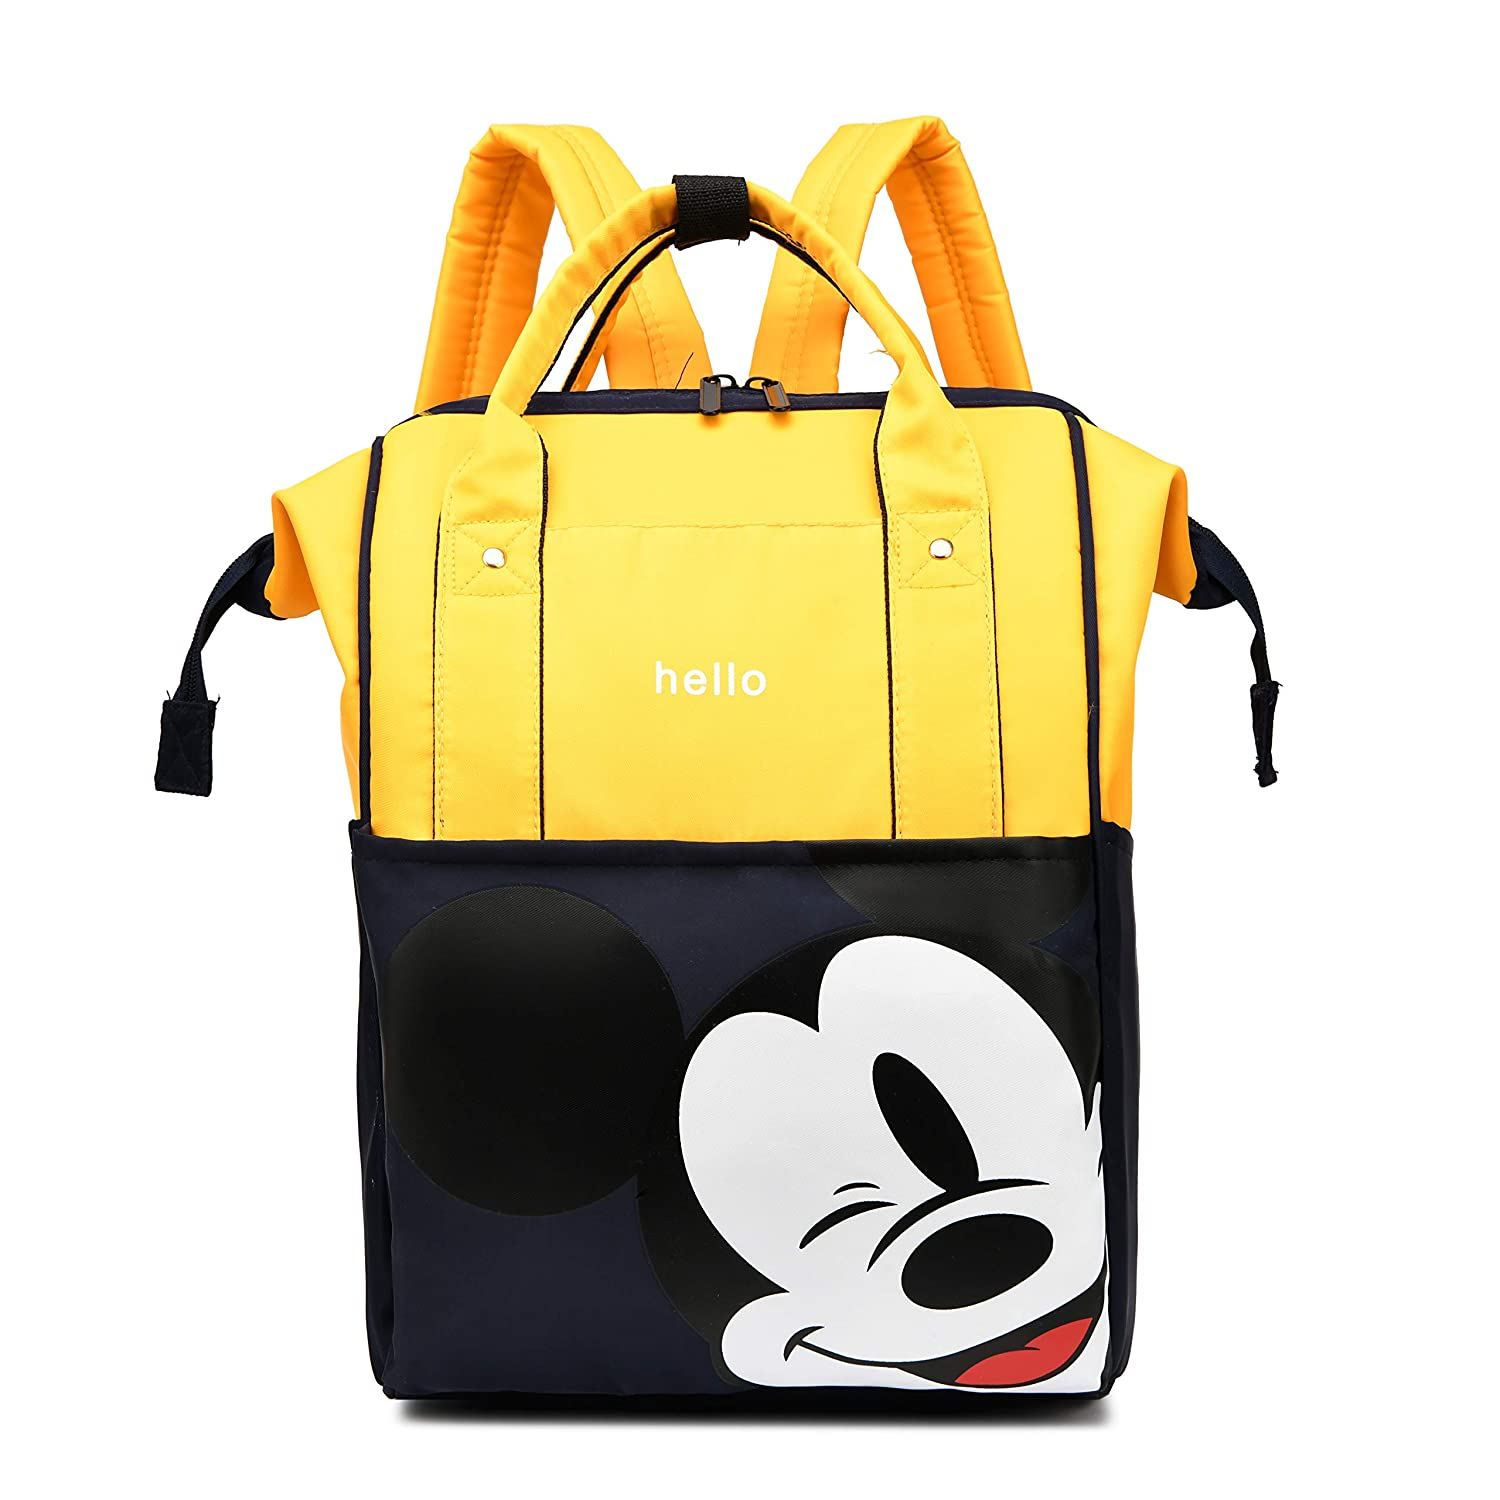 Mi-ck-ey Mouse Diaper Bag Backpack Portable Multifunction Travel Bag for Mom and Dad